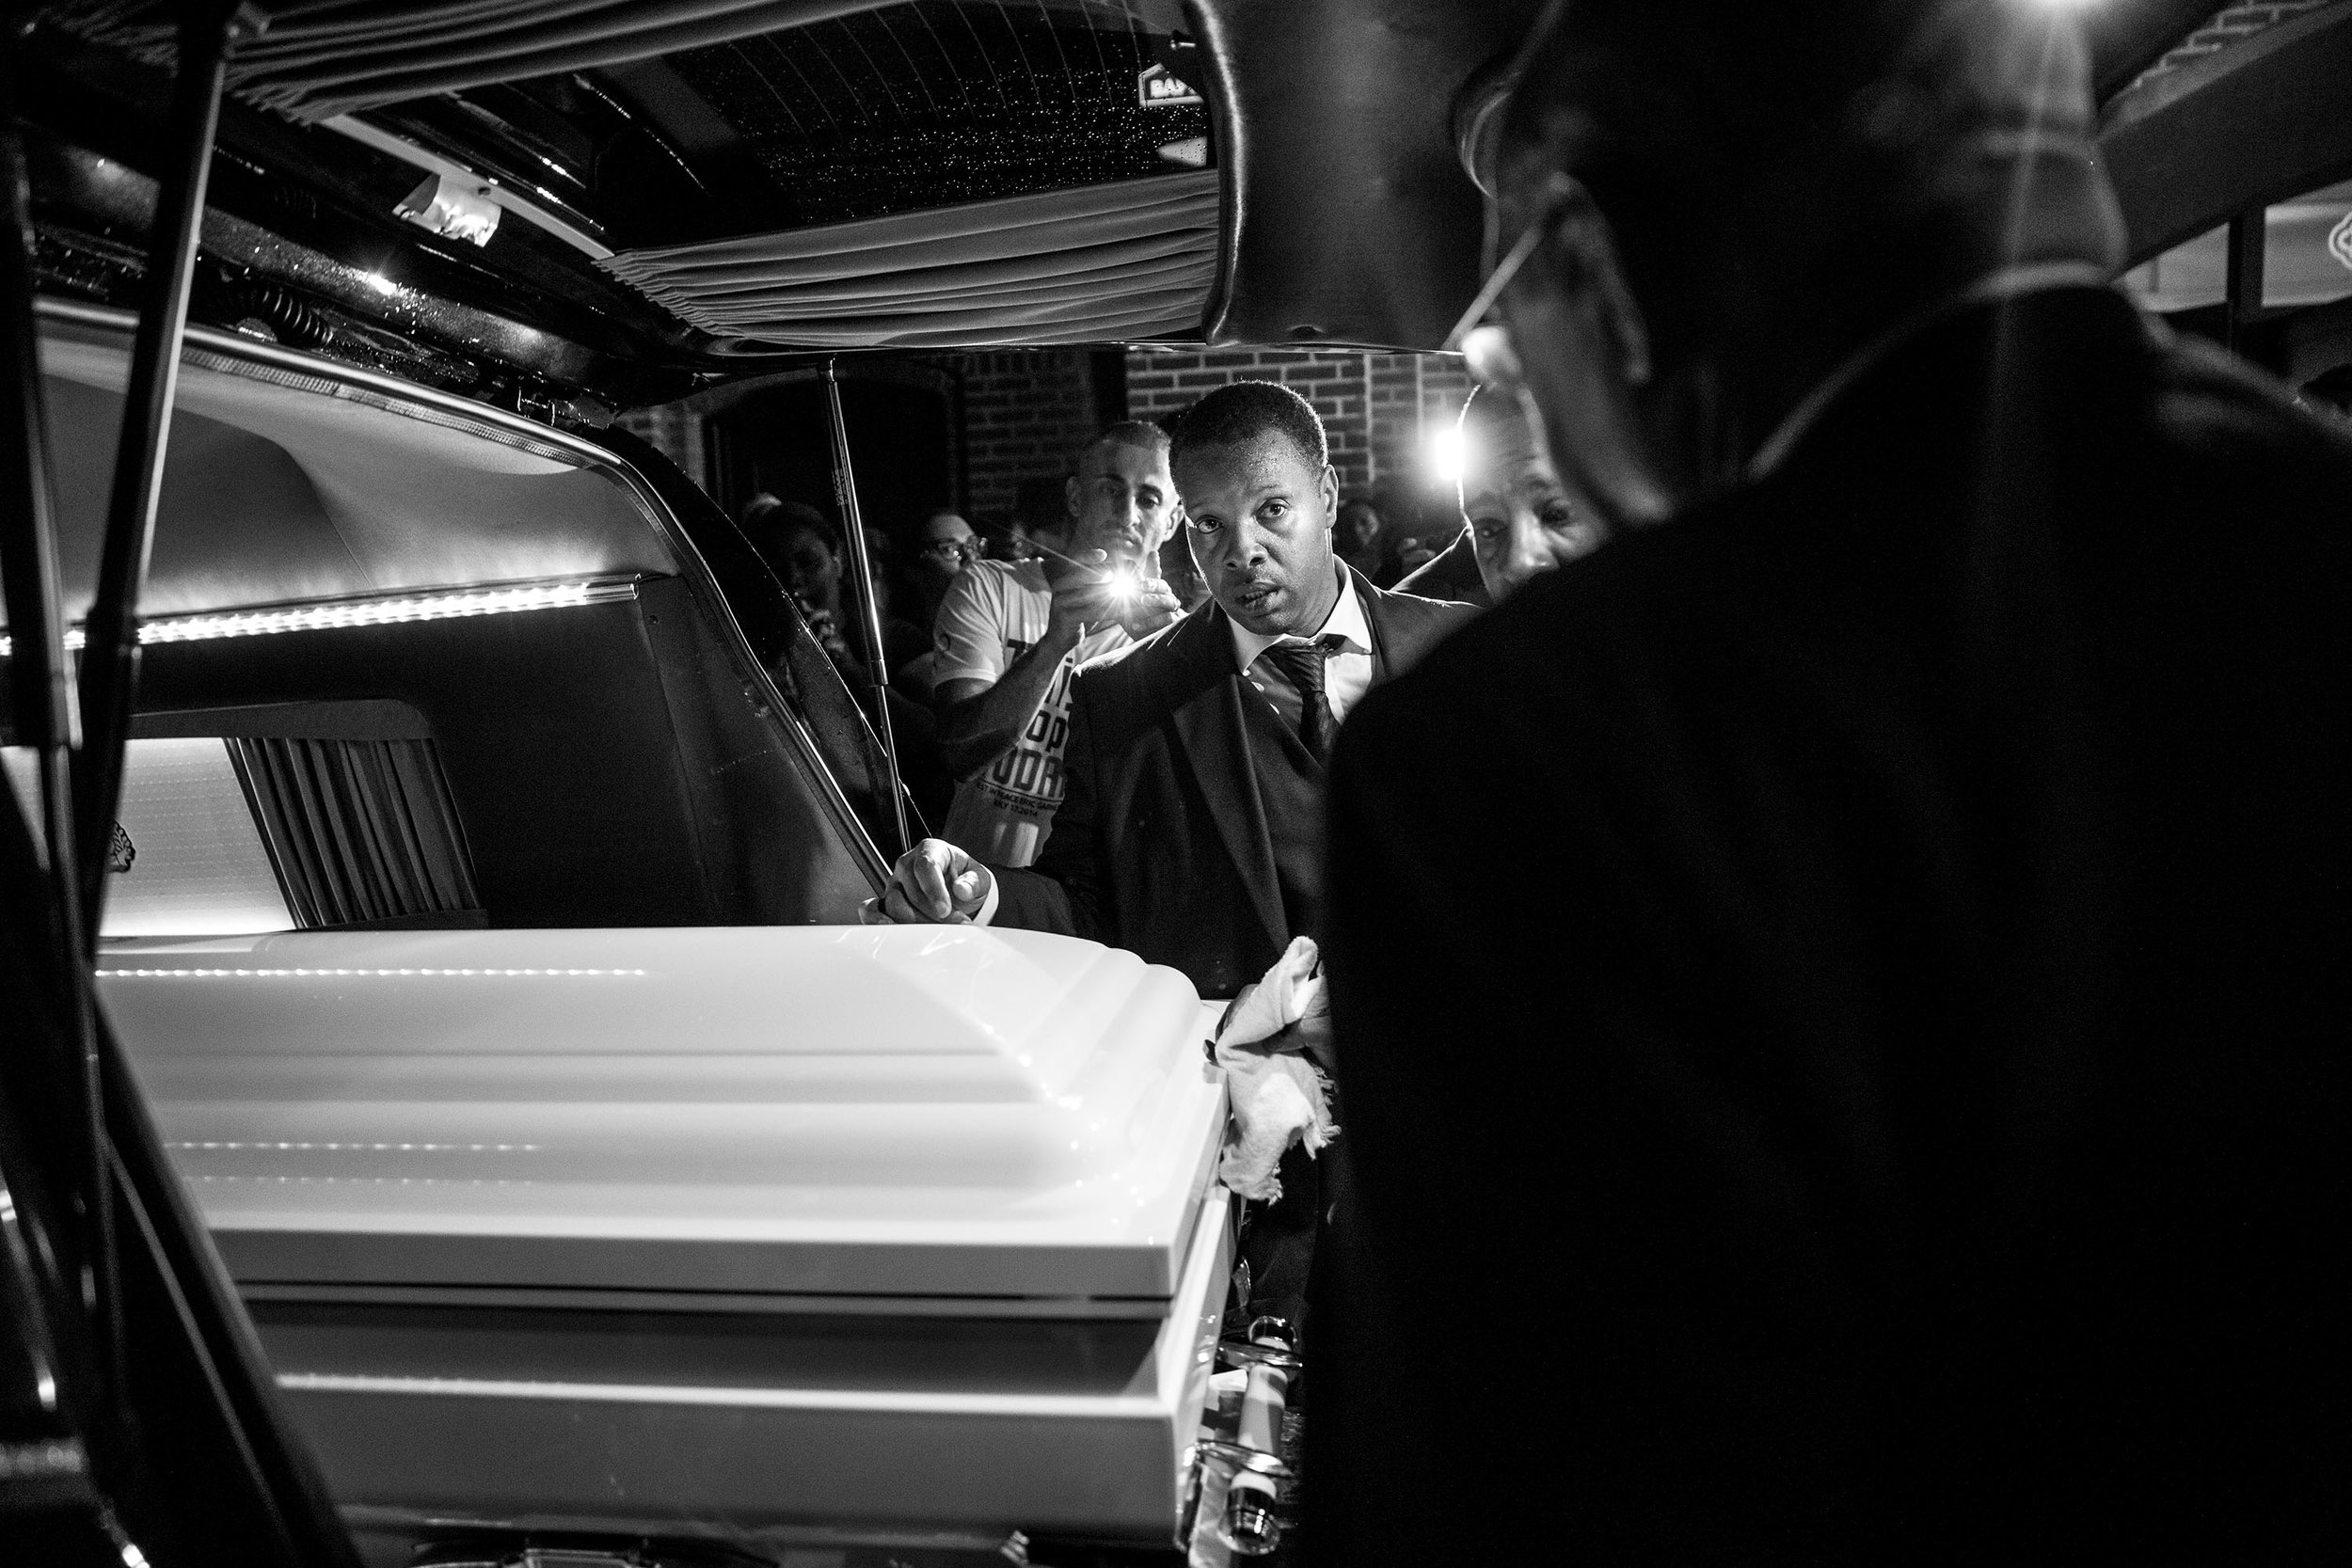 USA. Brooklyn, New York. 2014 : The casket of Eric Garner is placed into the hearse after his funeral at Bethel Baptist Church in Brooklyn, New York. Garner died after being placed in an illegal chokehold by an New York Police Department officer during a confrontation.